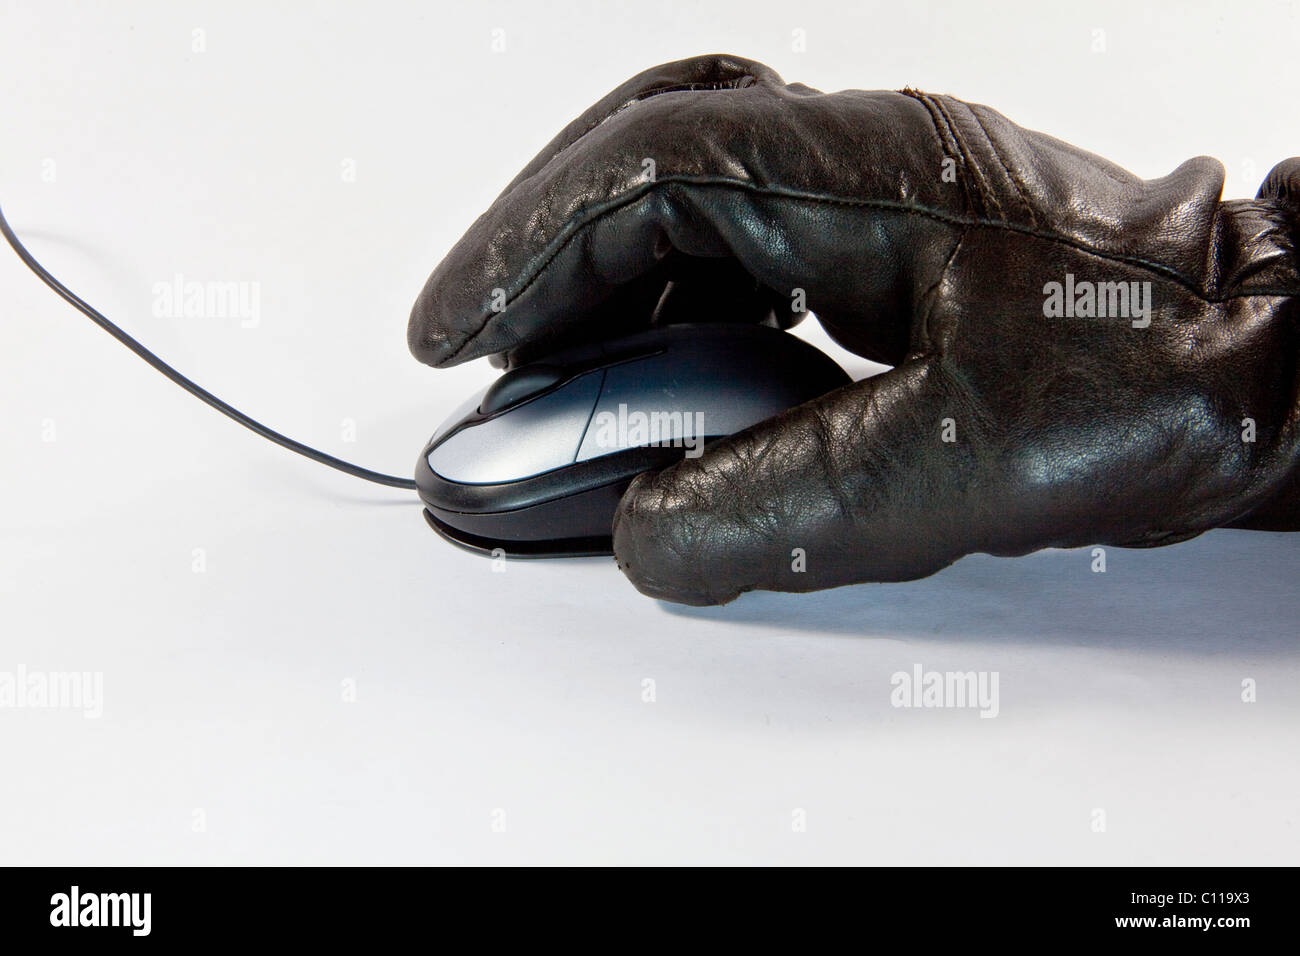 Thief with gloved hand, computer mouse, symbolic image for misuse of data, computer crime - Stock Image